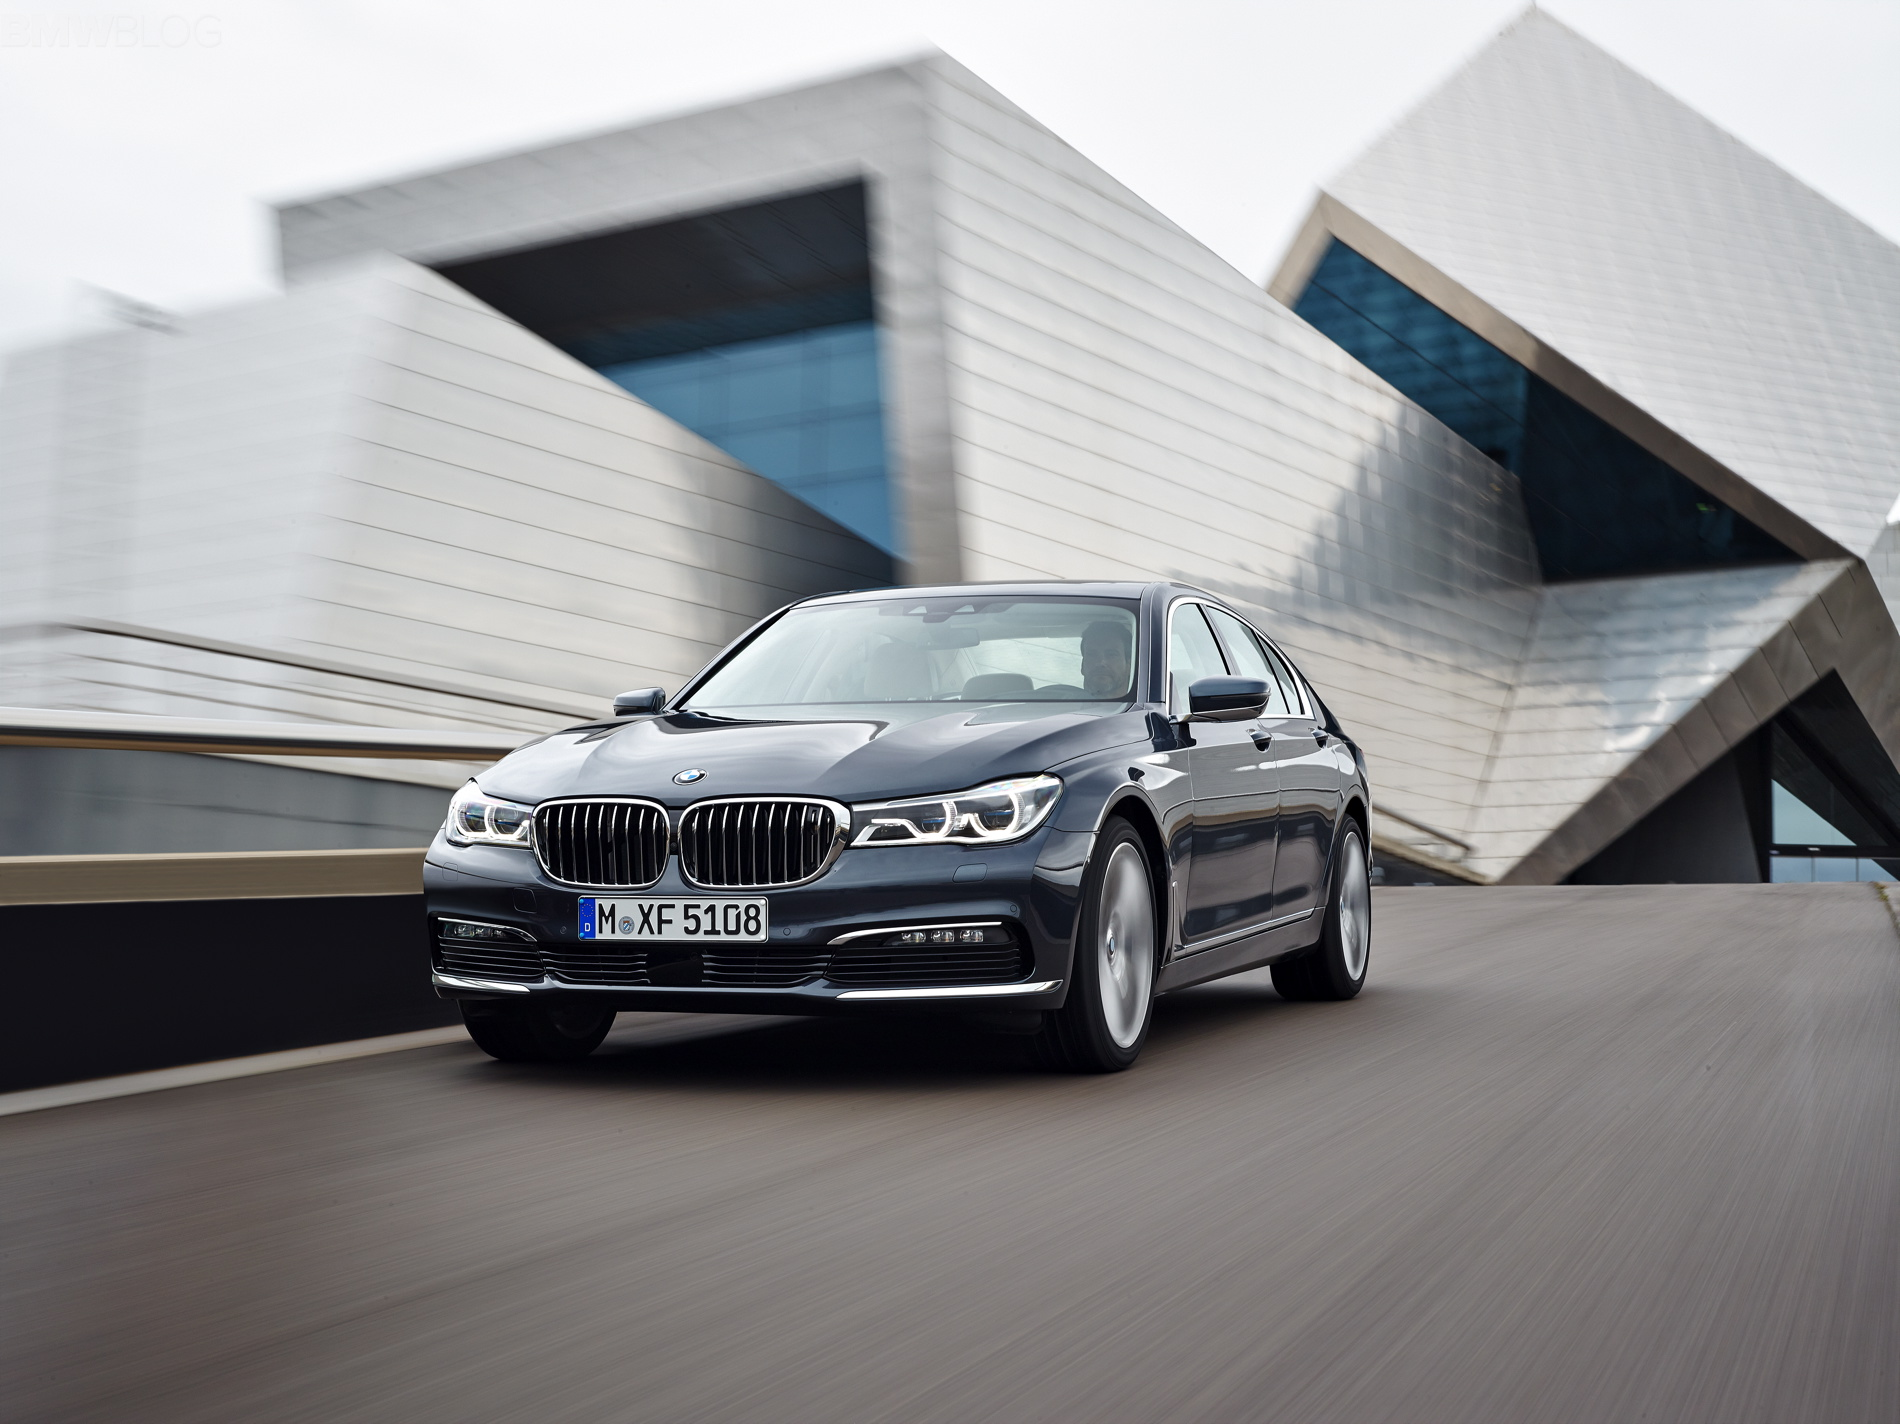 2016 bmw 7 series exterior images 1900x1200 03